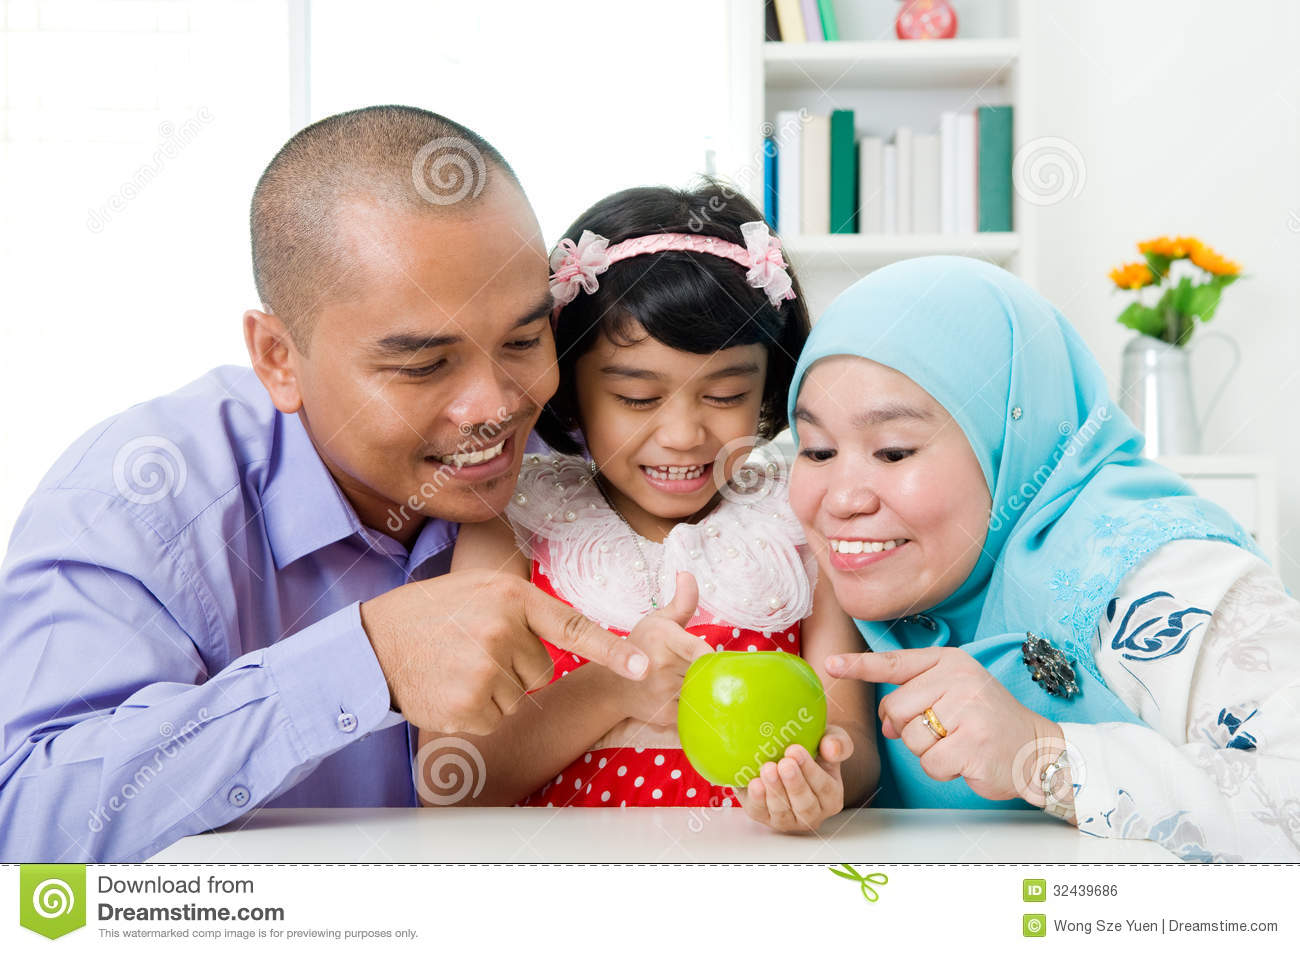 Muslim Family Royalty Free Stock Image - Image: 32439686